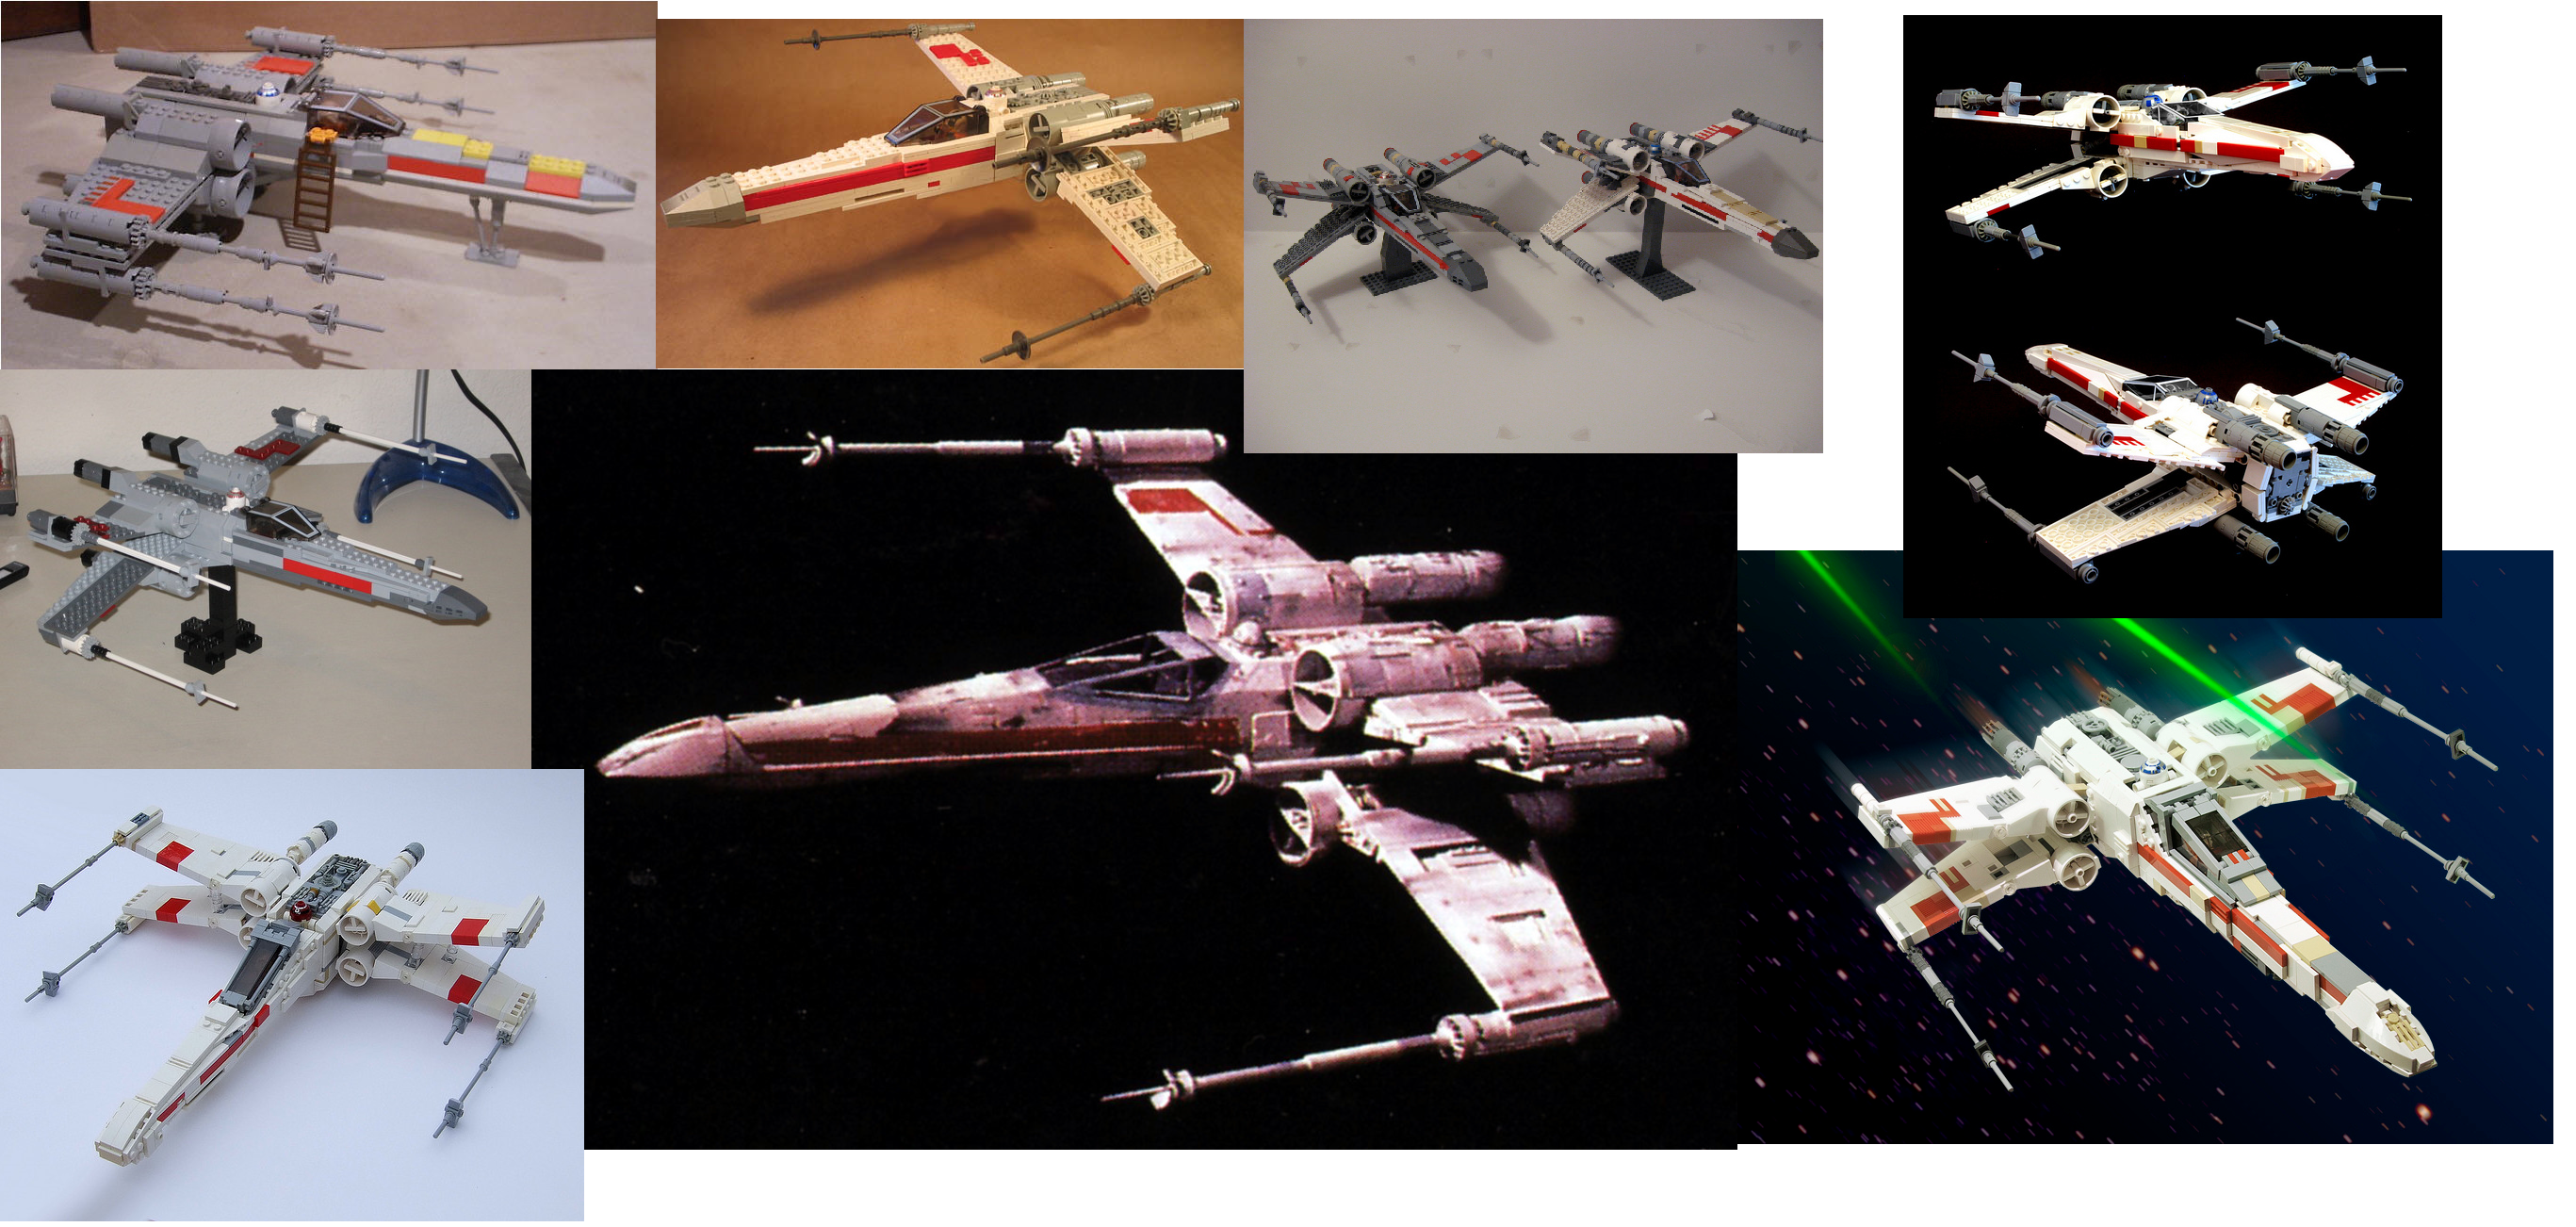 lego x wing instructions 6212